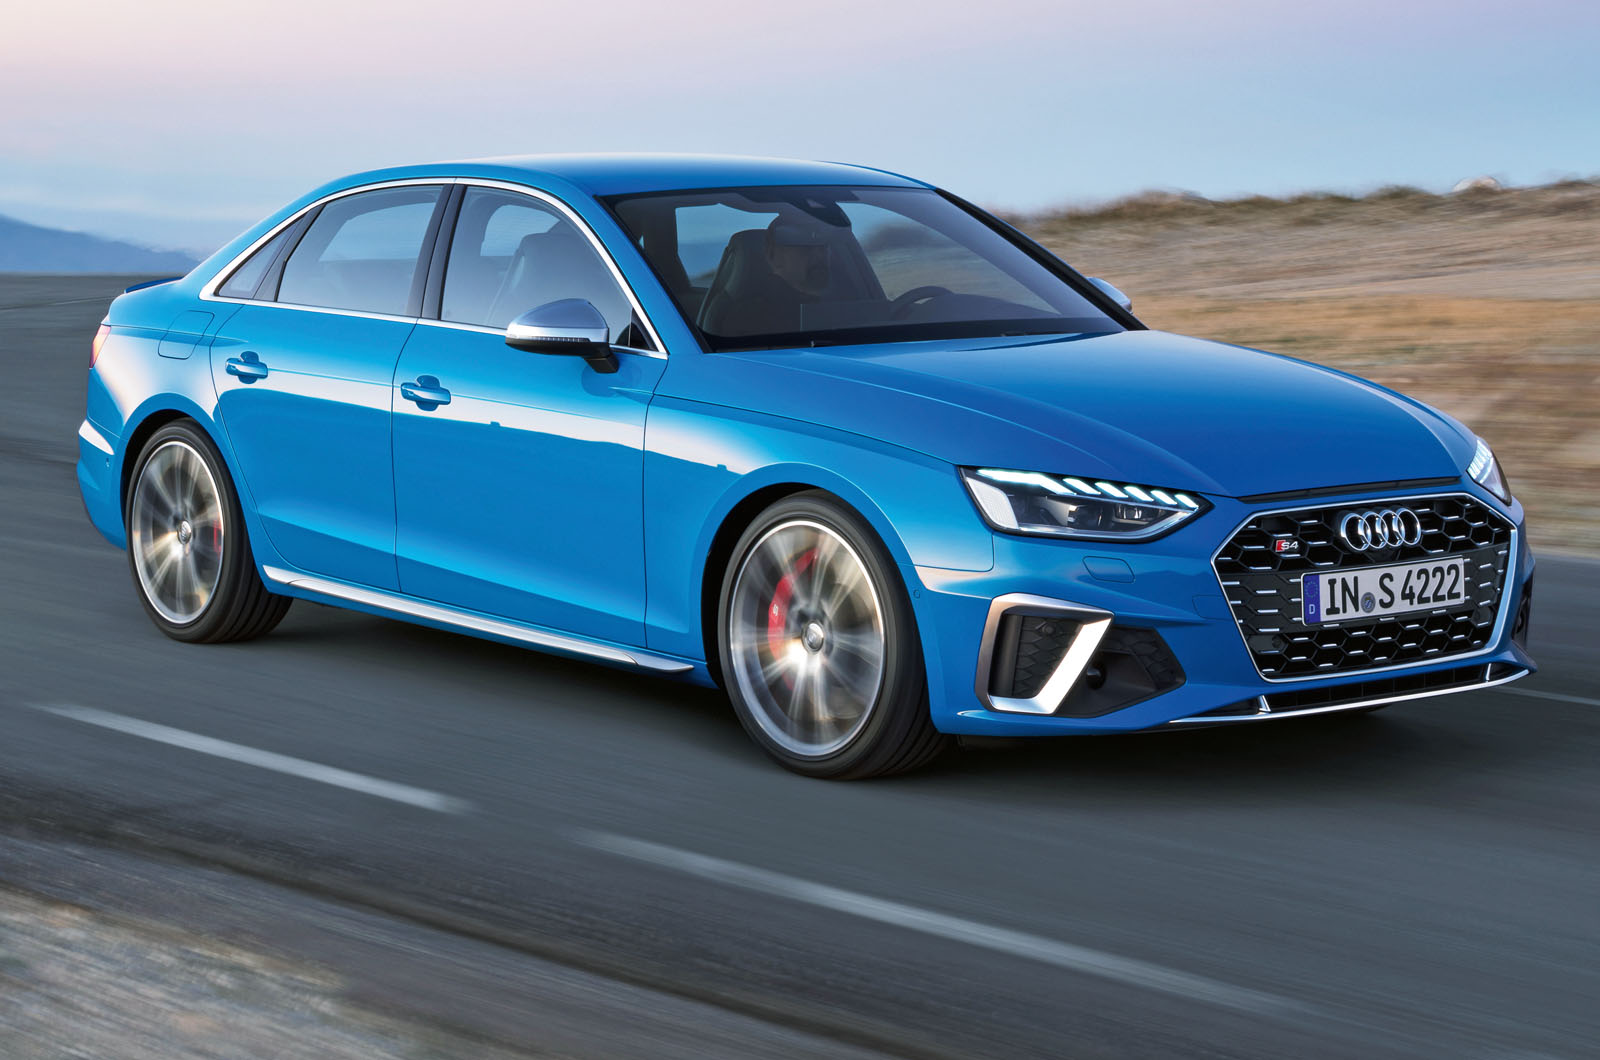 2019 Audi Q4 USA Release Date And Price >> 2019 Audi A4 Pricing For Facelifted Executive Car Revealed